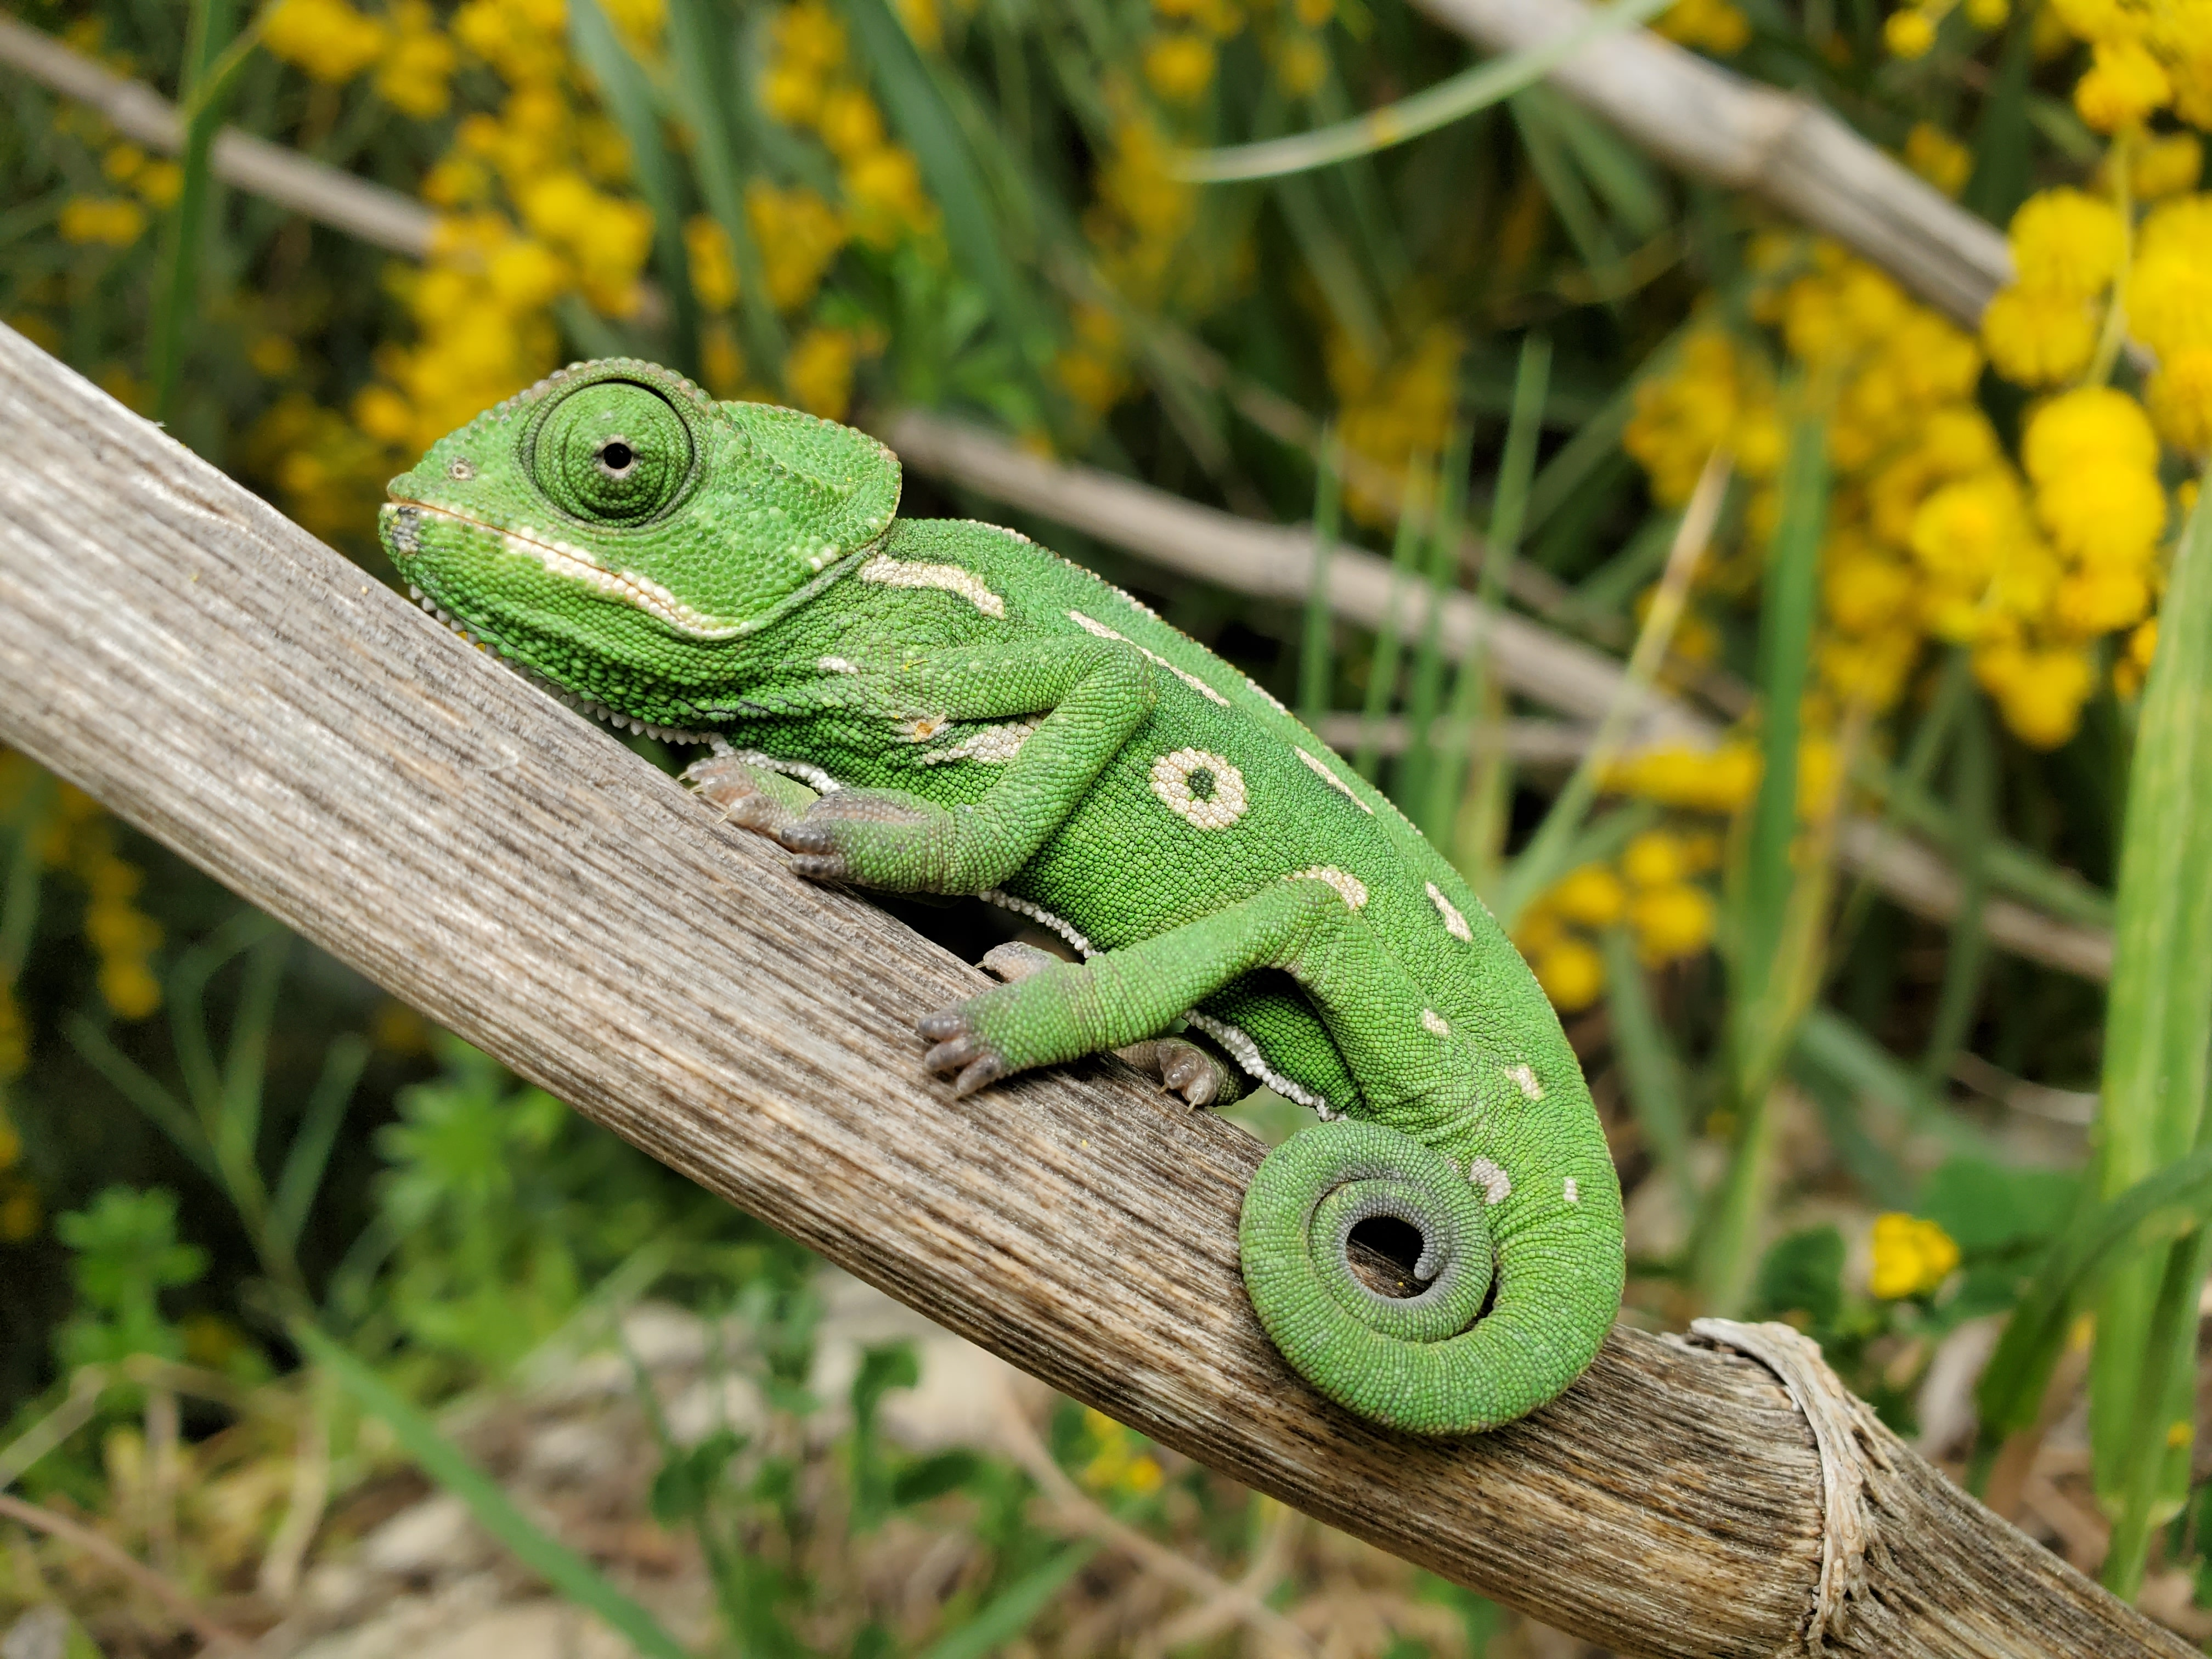 A green chameleon resting on a tree branch with curled tail in front.